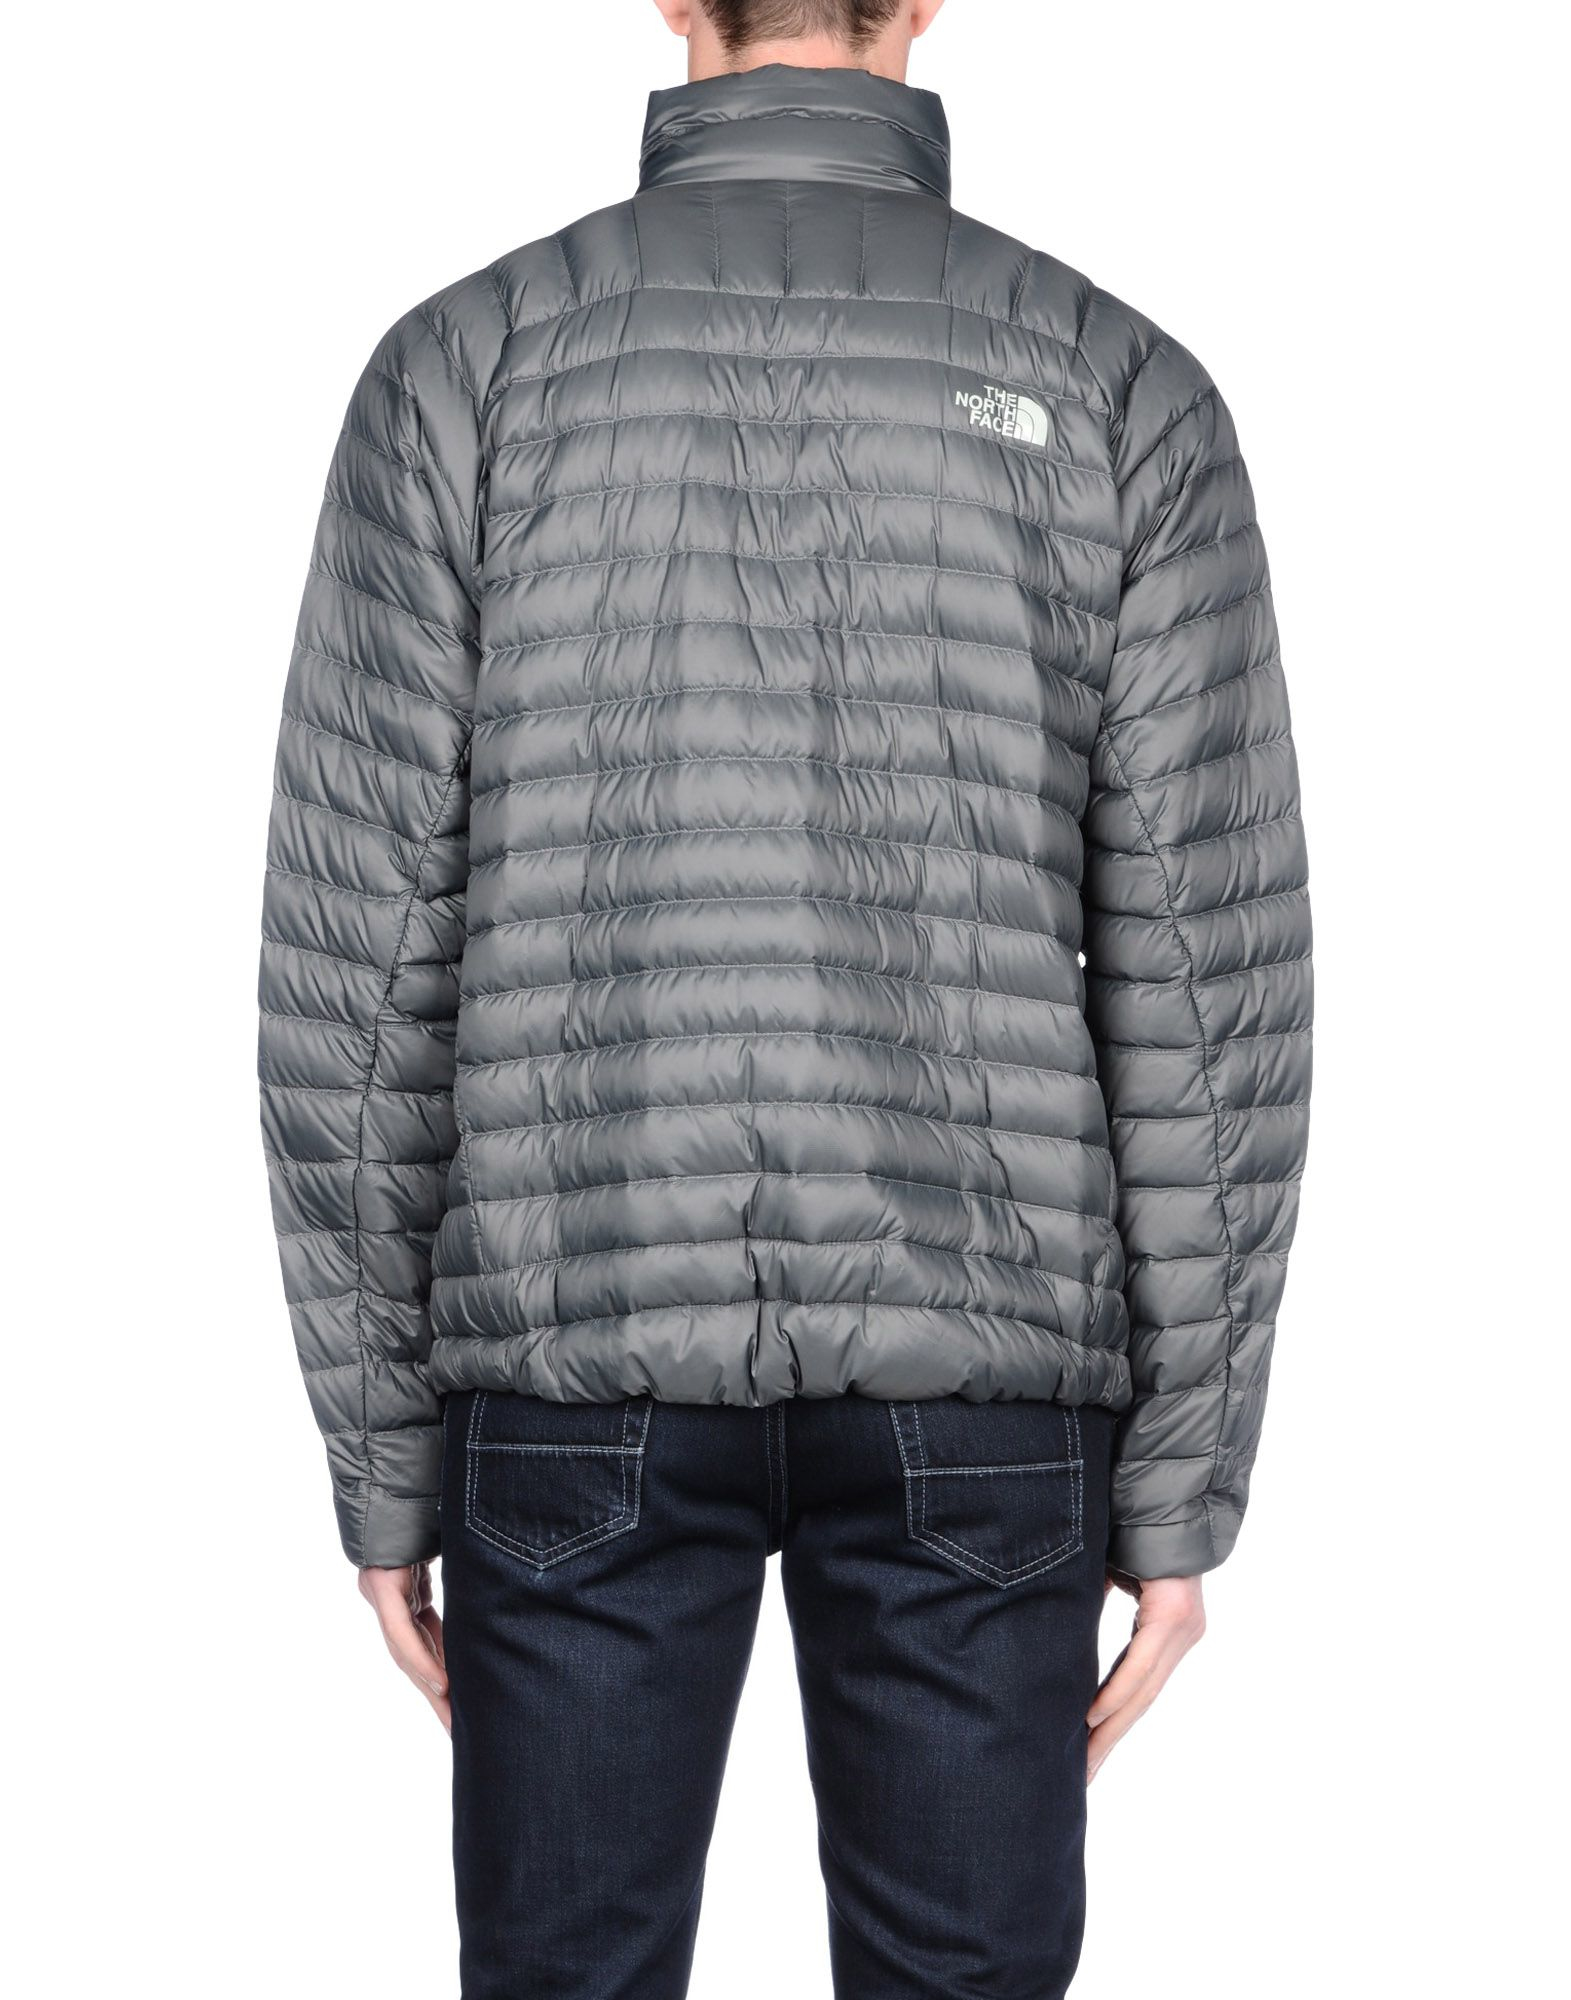 Lyst - The North Face Down Jacket in Gray for Men 866dacd66